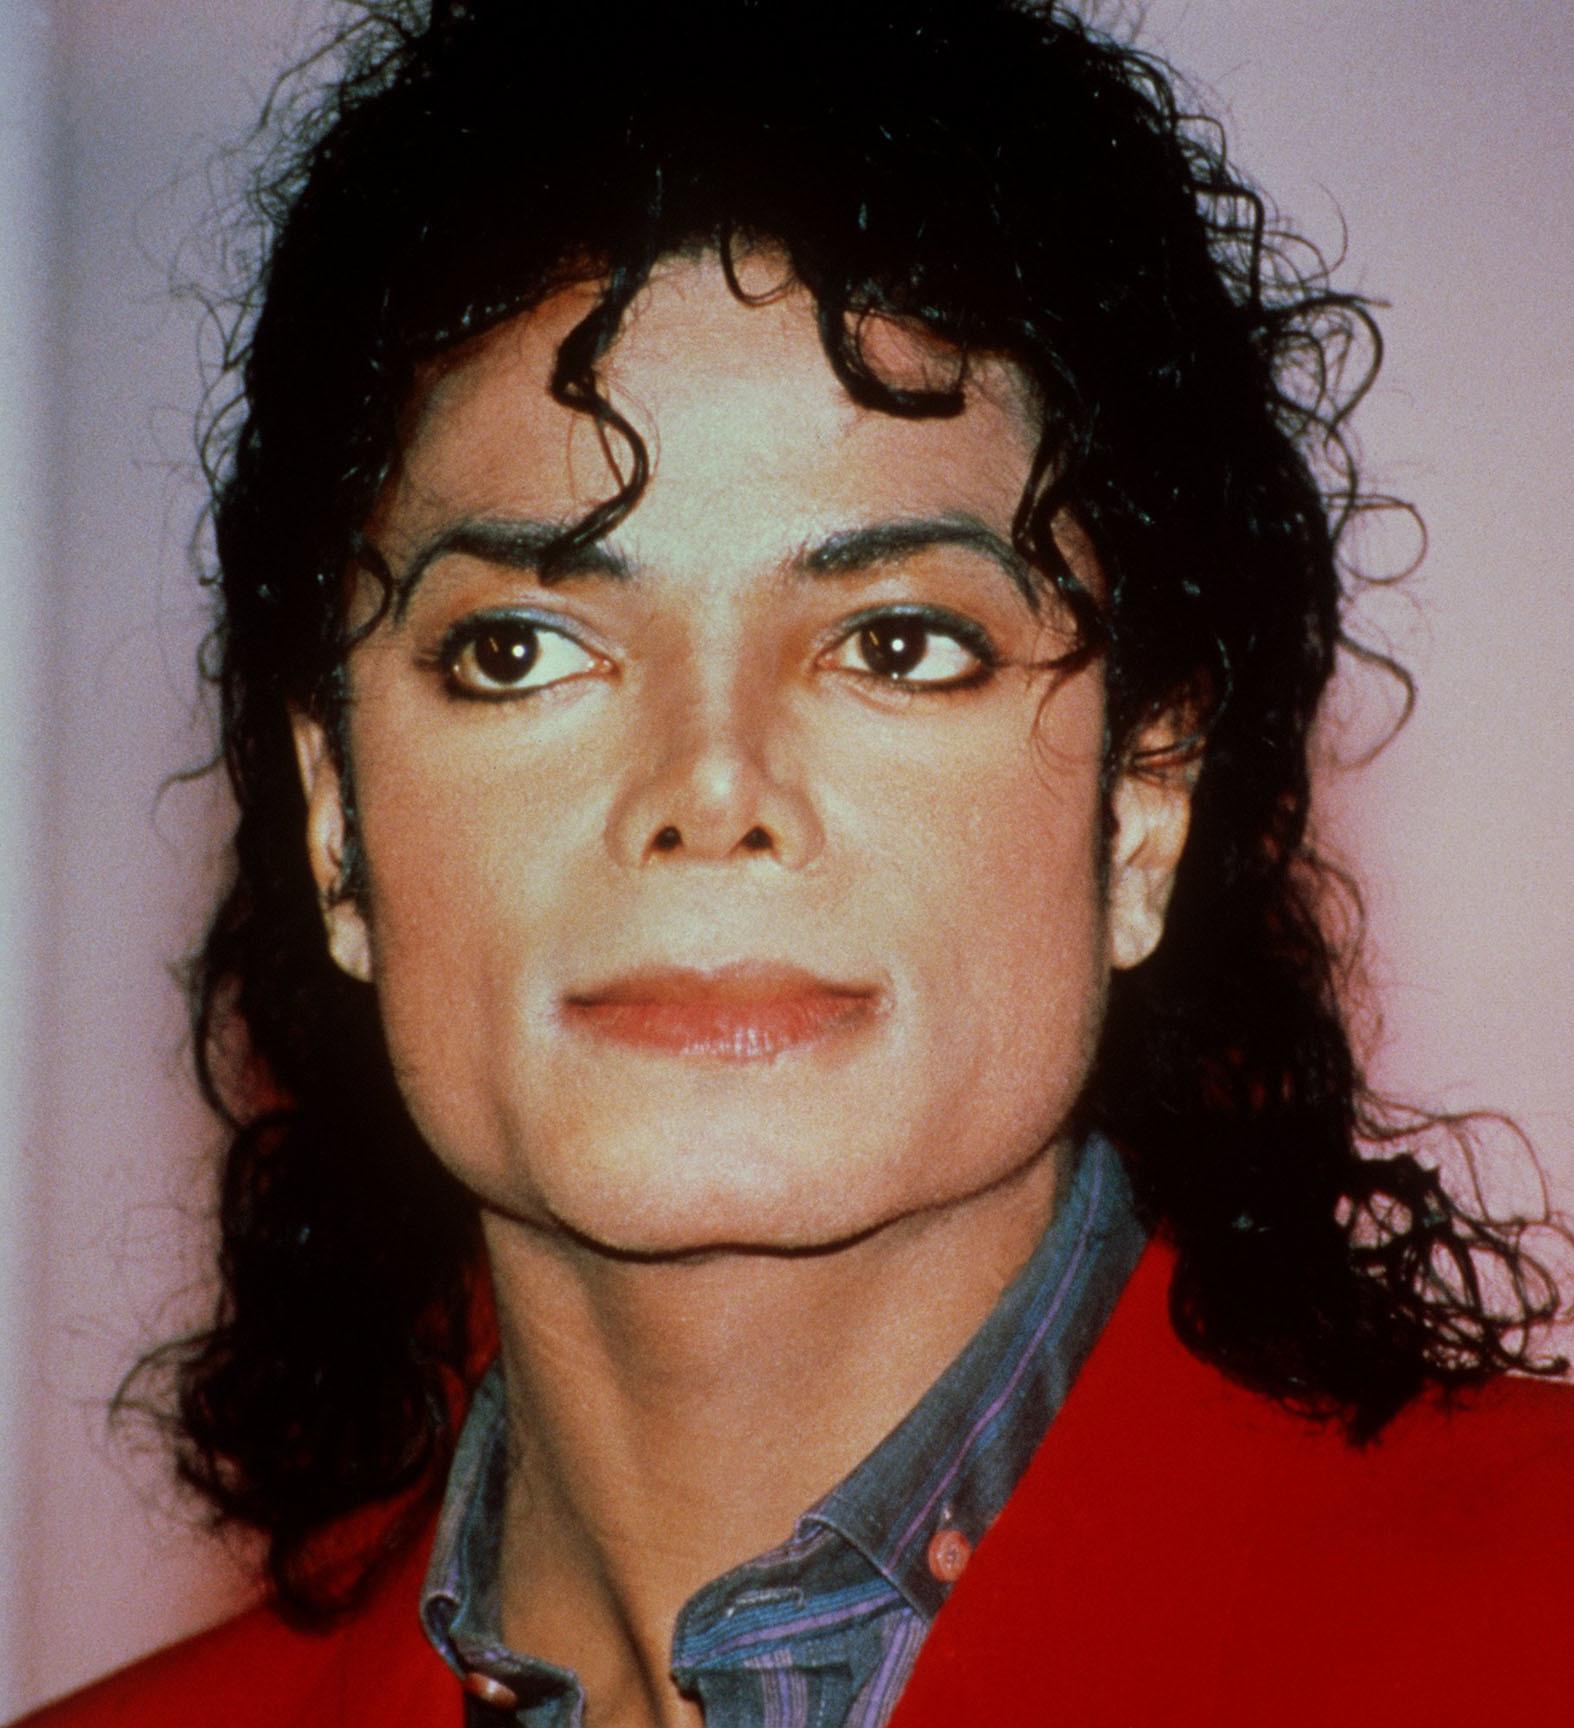 Teen Compared To Michael Jackson Says She Hasn't Had Surgery To Look Like Him